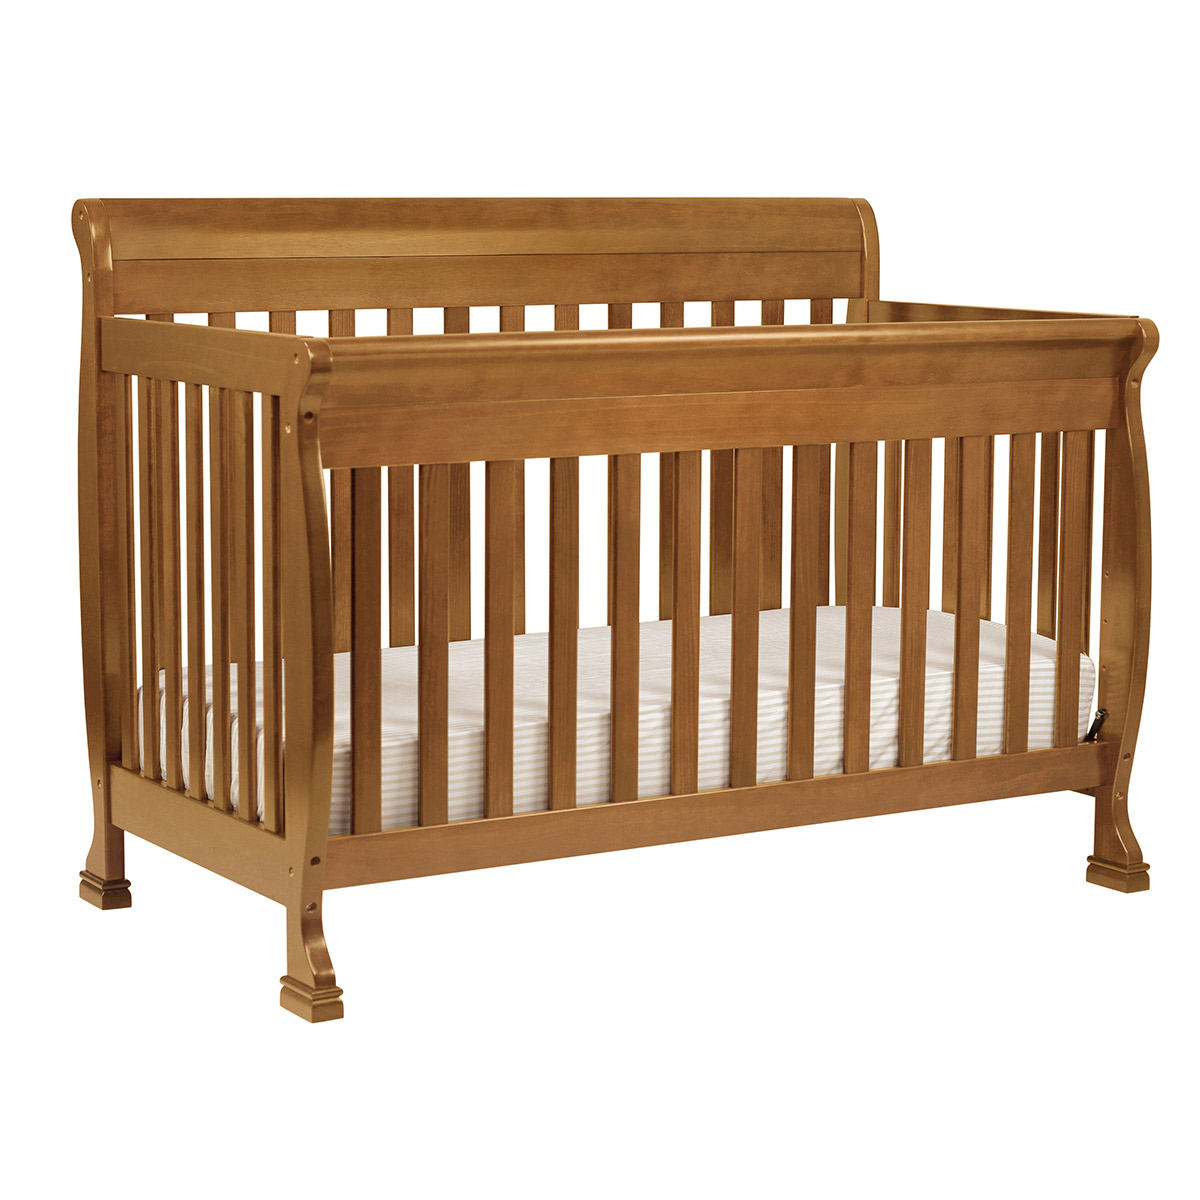 Amish crib for sale - Davinci 2 Piece Nursery Set Kalani 4 In 1 Convertible Crib And Combo Dresser In Chestnut Free Shipping